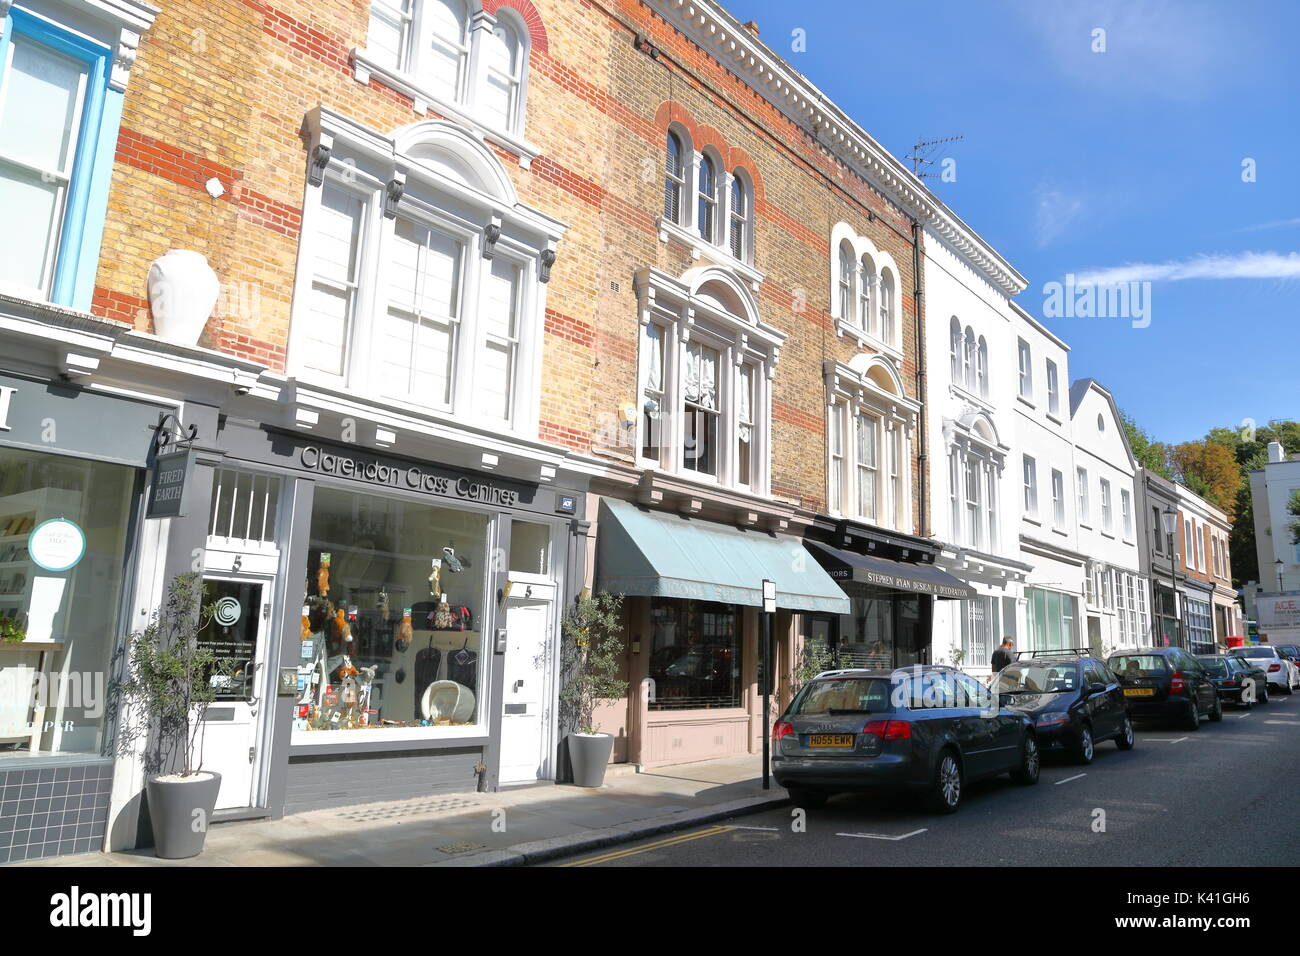 Good Portland Road In Notting Hill, London, UK   Stock Image Photo Gallery